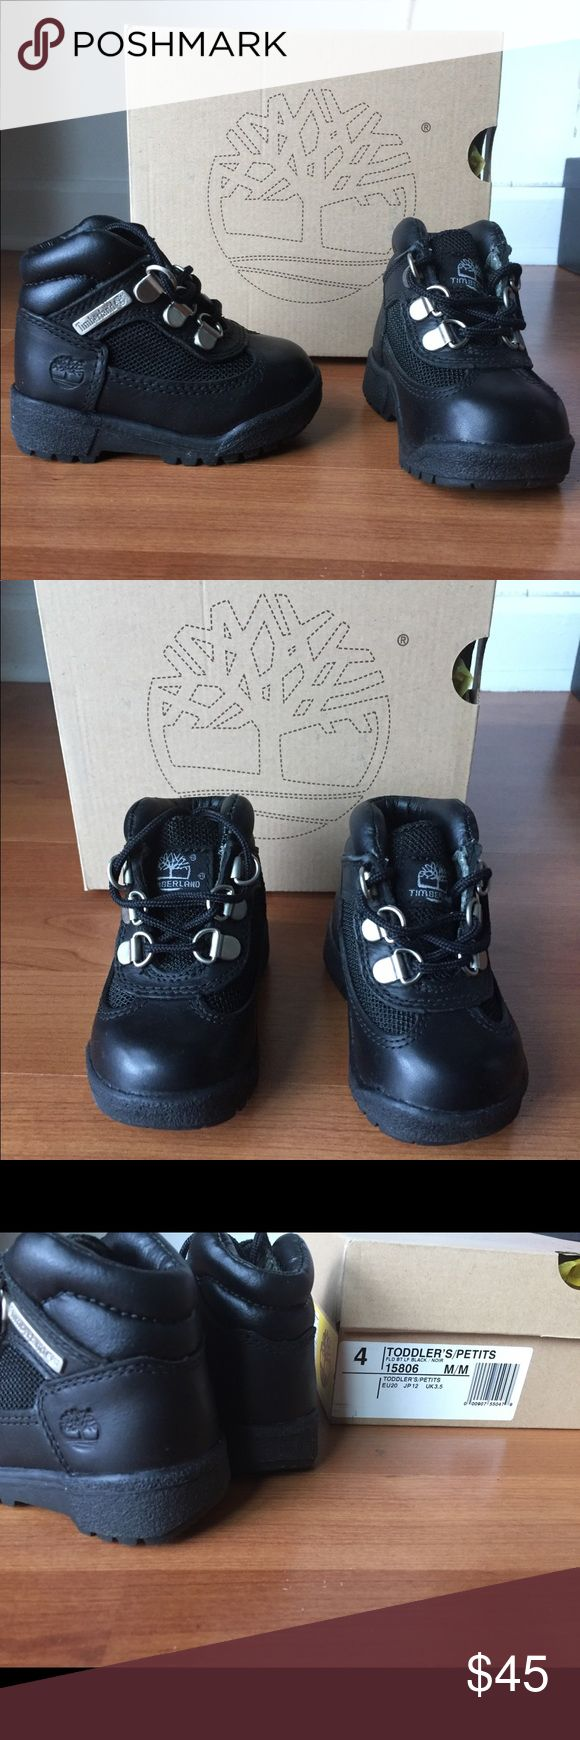 """New Timberland 6"""" field boots black Premium New in box Timberland 6"""" field boots black Premium in an infant size 4. Black on black Timberland Shoes Boots"""